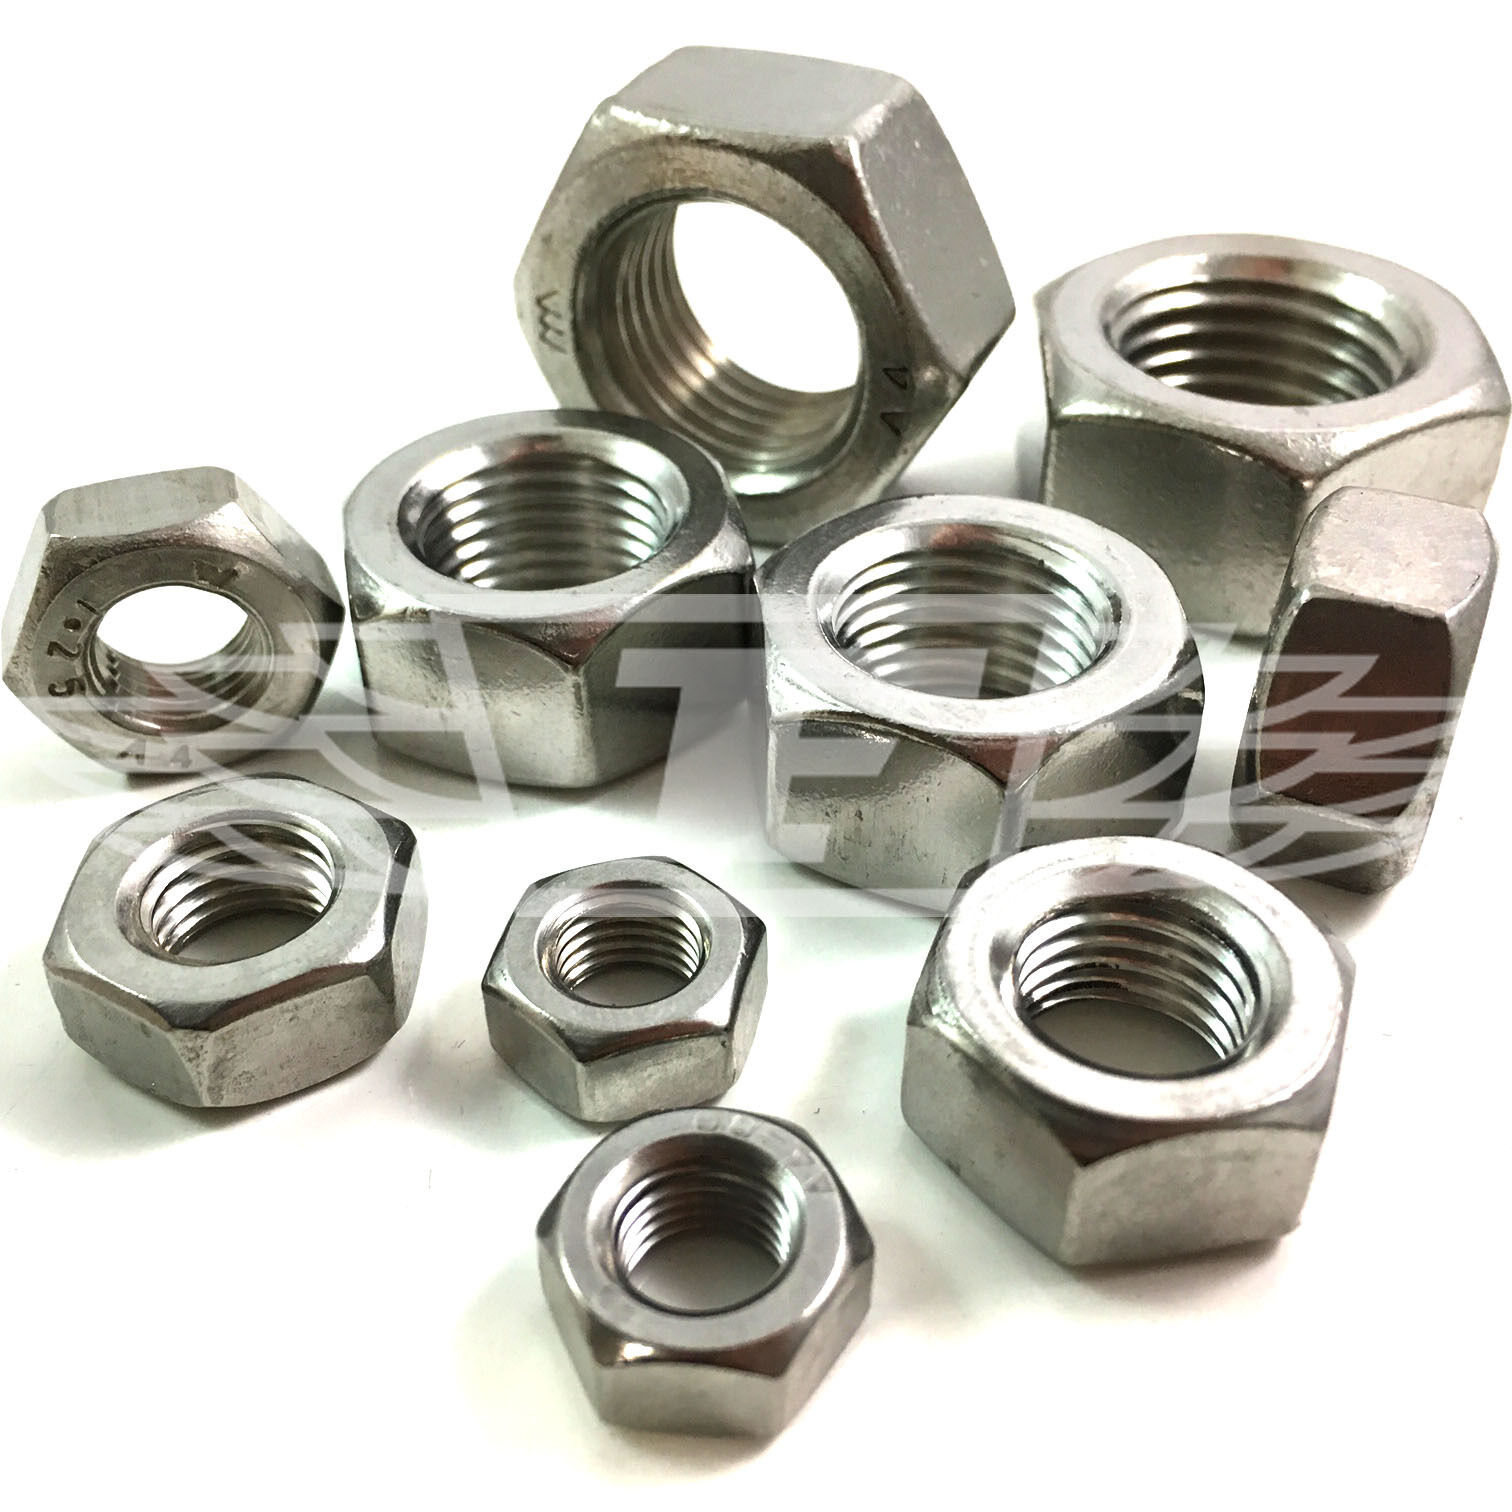 M8 M10 M12 M14 M16 M18 M20 A4 STAINLESS FINE PITCH METRIC THREAD HEX FULL NUTS